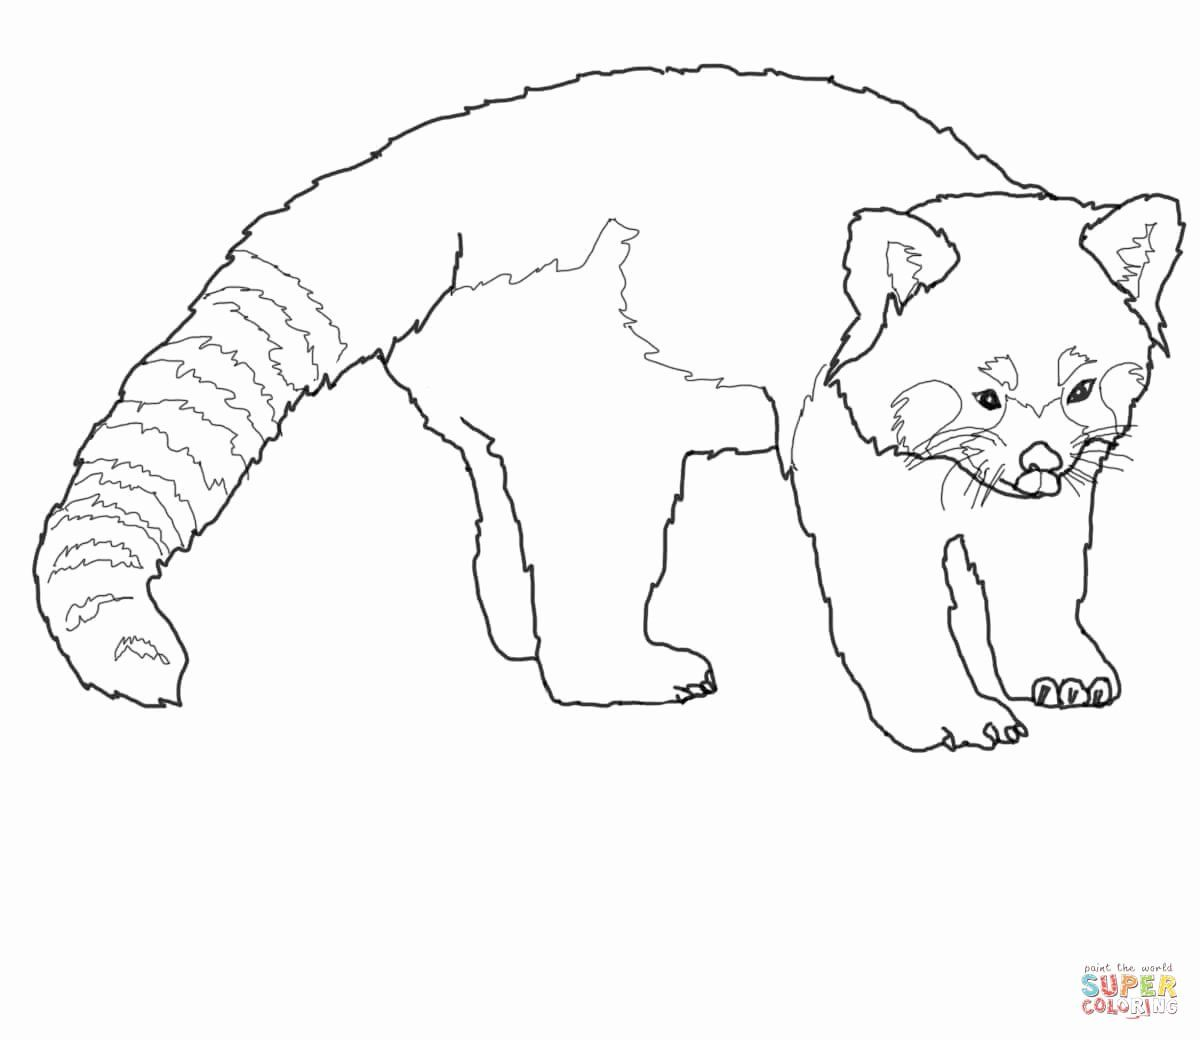 Chibi Animal Coloring Pages in 2020 (With images) | Panda ...